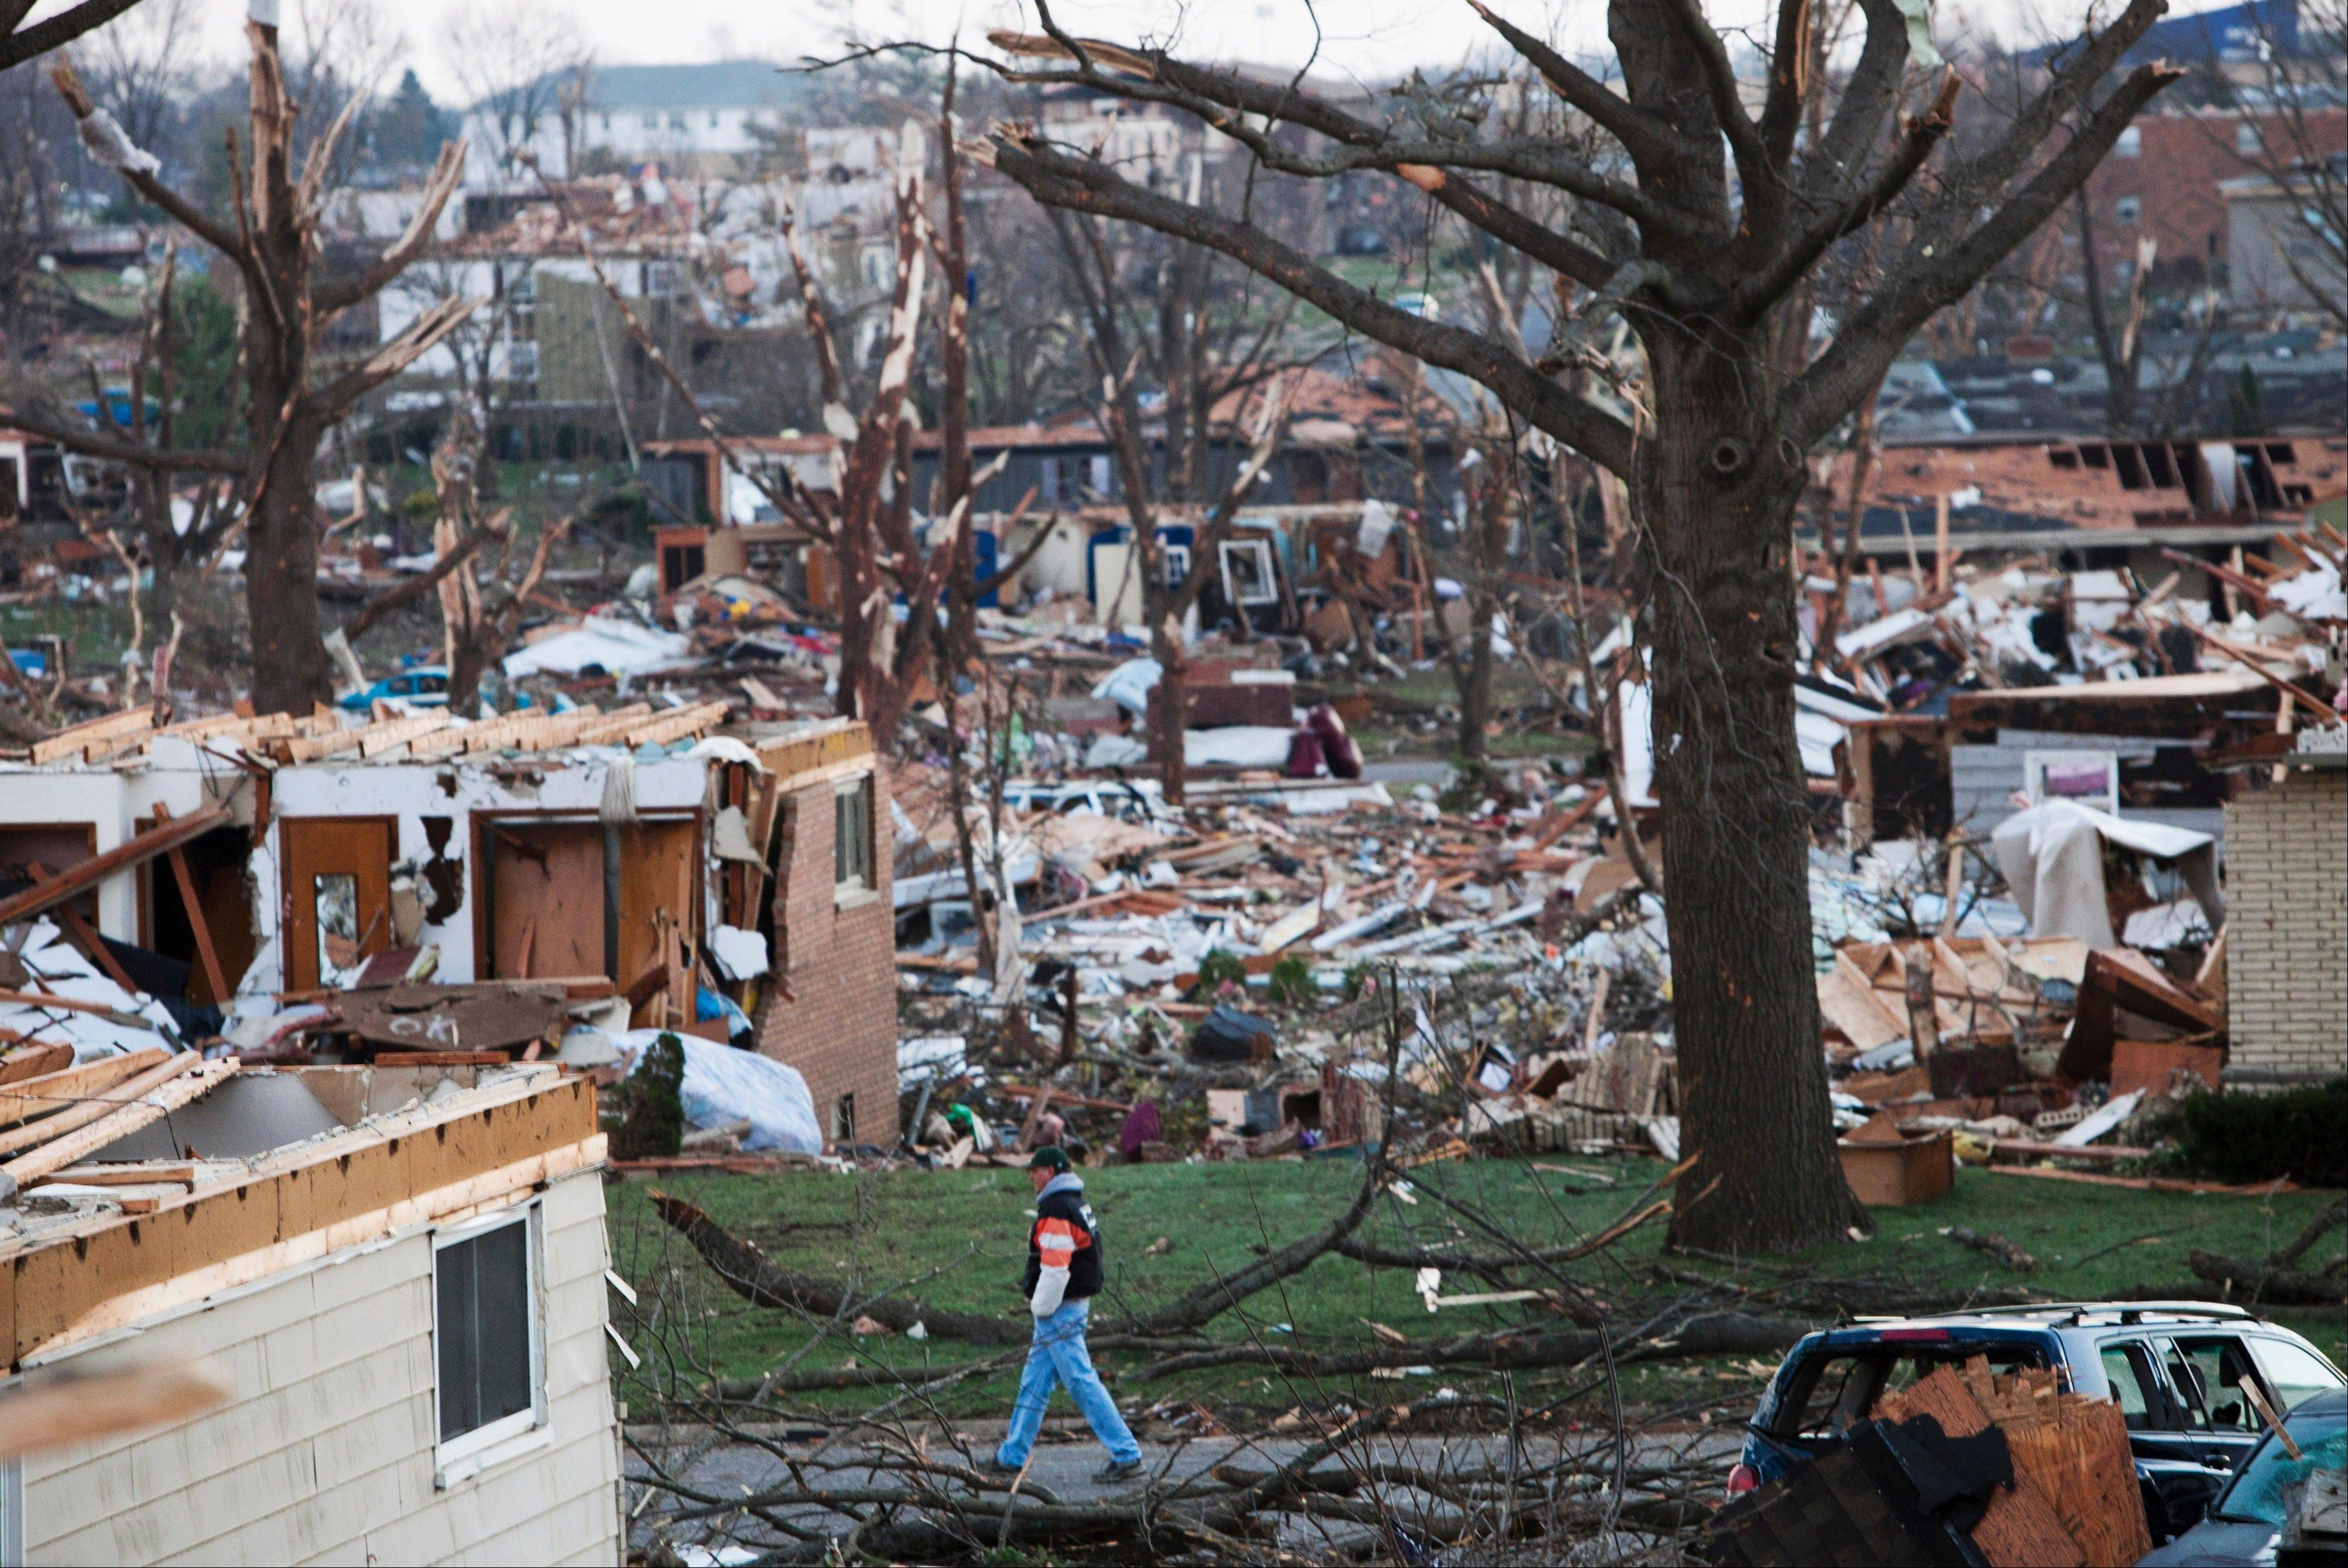 A man walks through what is left of a neighborhood in Washington, Ill., a day after the Nov. 17 tornado ripped through the central Illinois town.